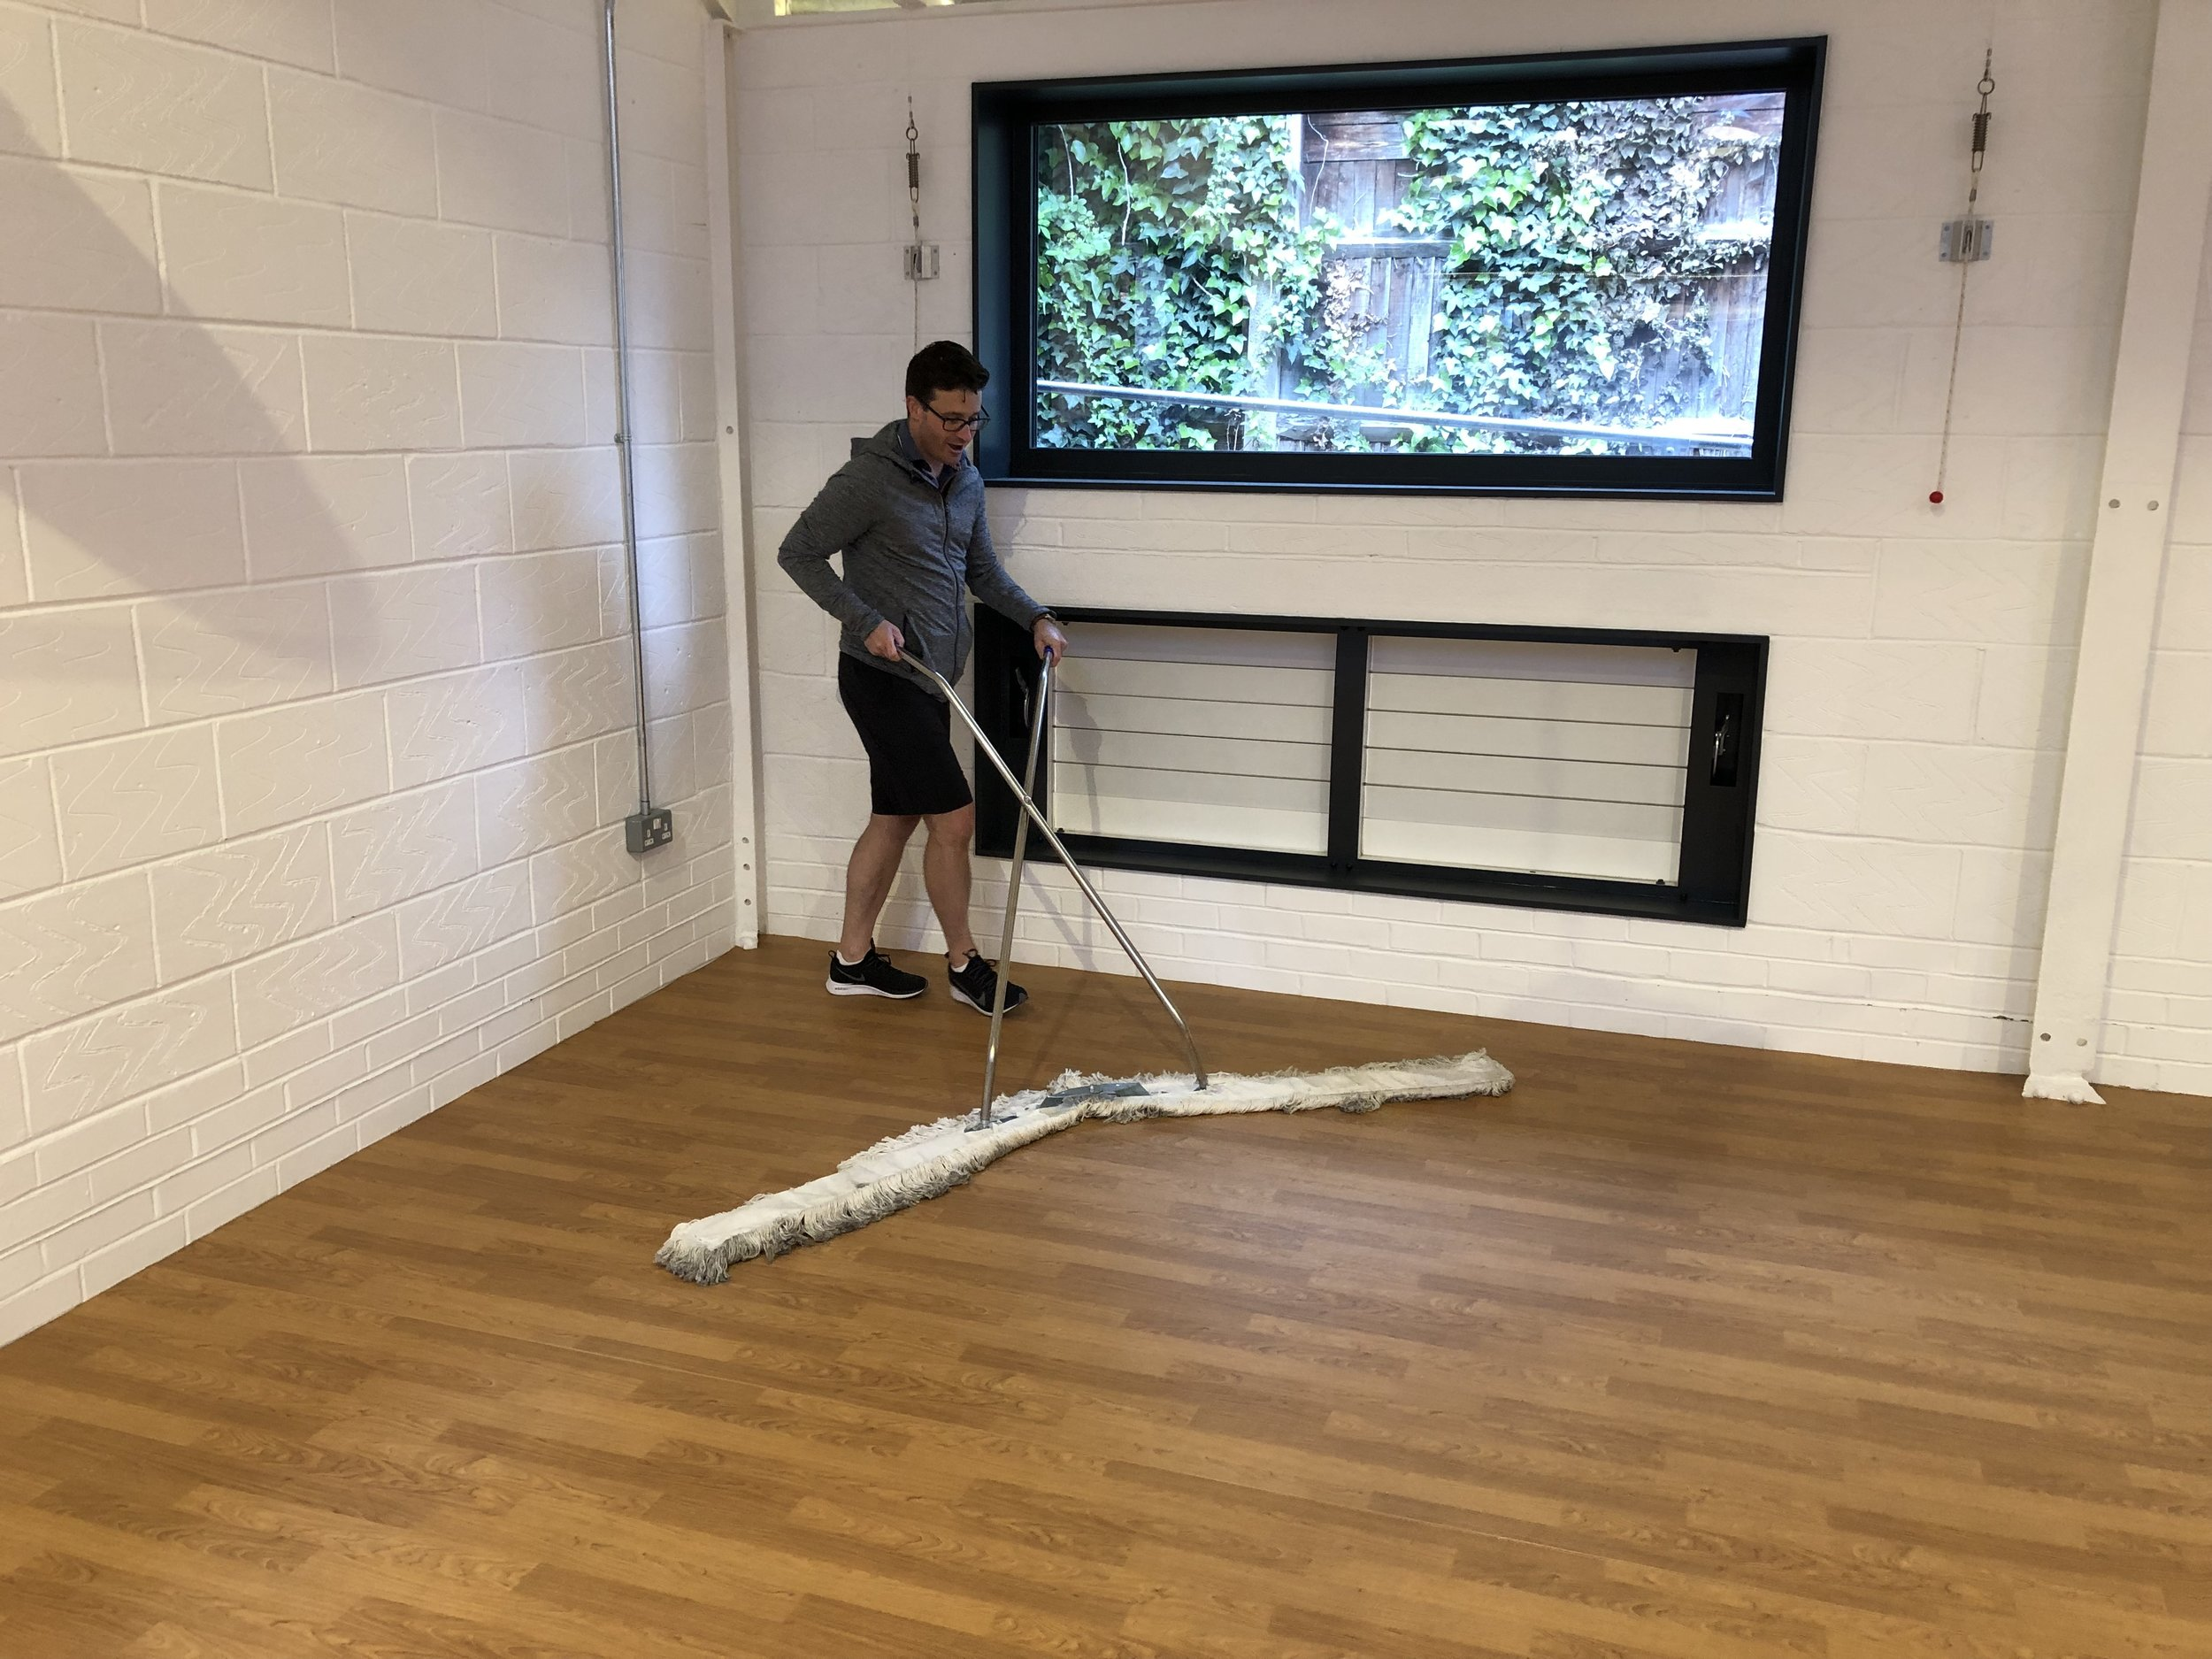 Jason Gray multi-tasking, enjoying polishing the new large gym floor